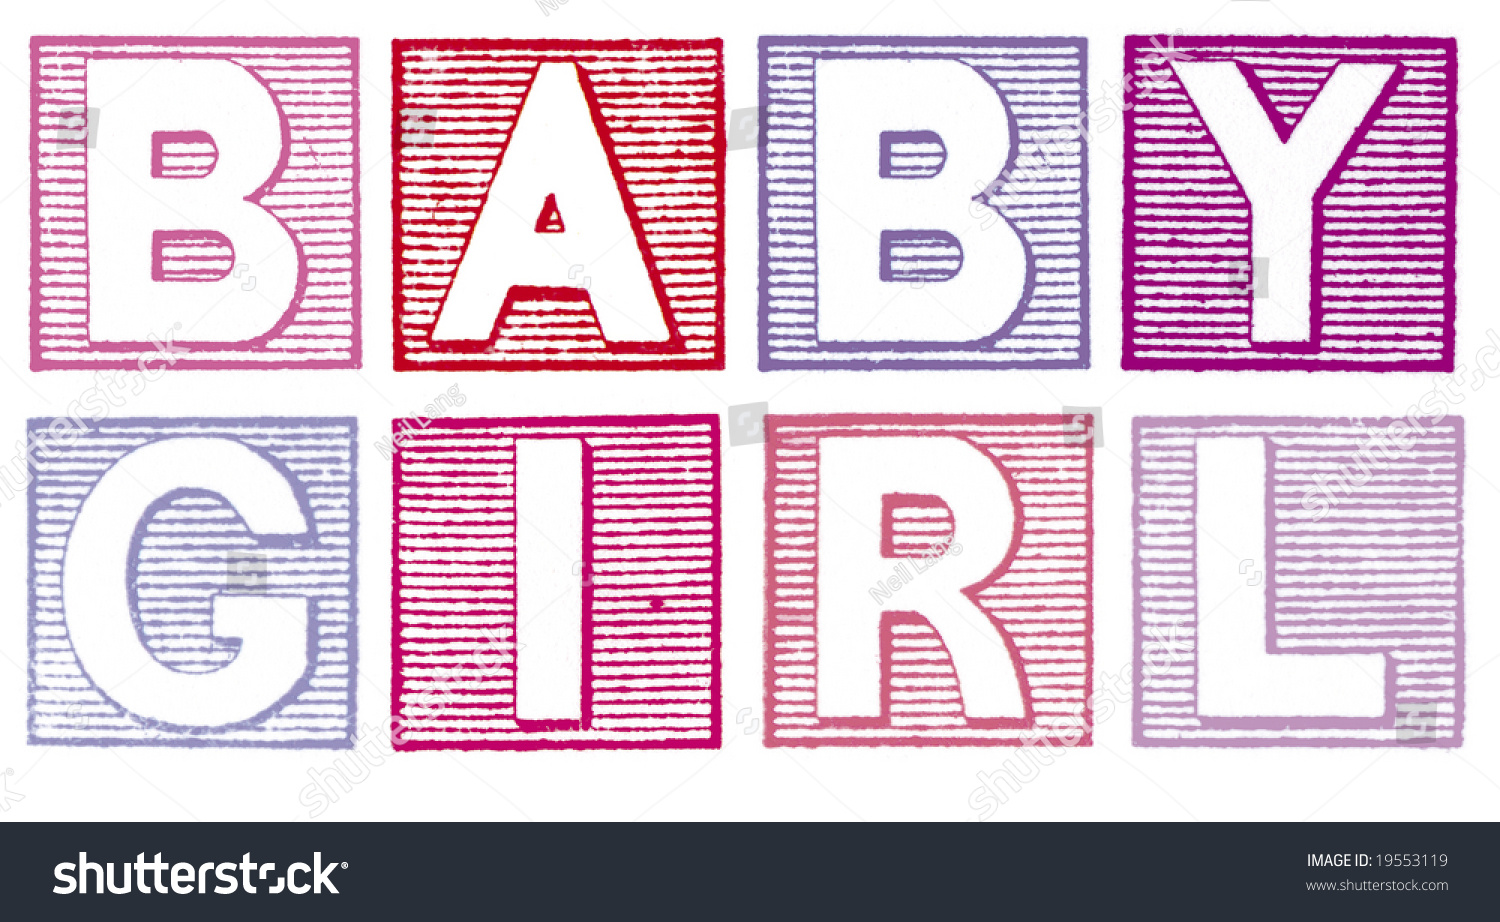 Stock Photo Baby Girl Written In Blue Vintage Rubber Stamp Letters on Form An Alphabet View